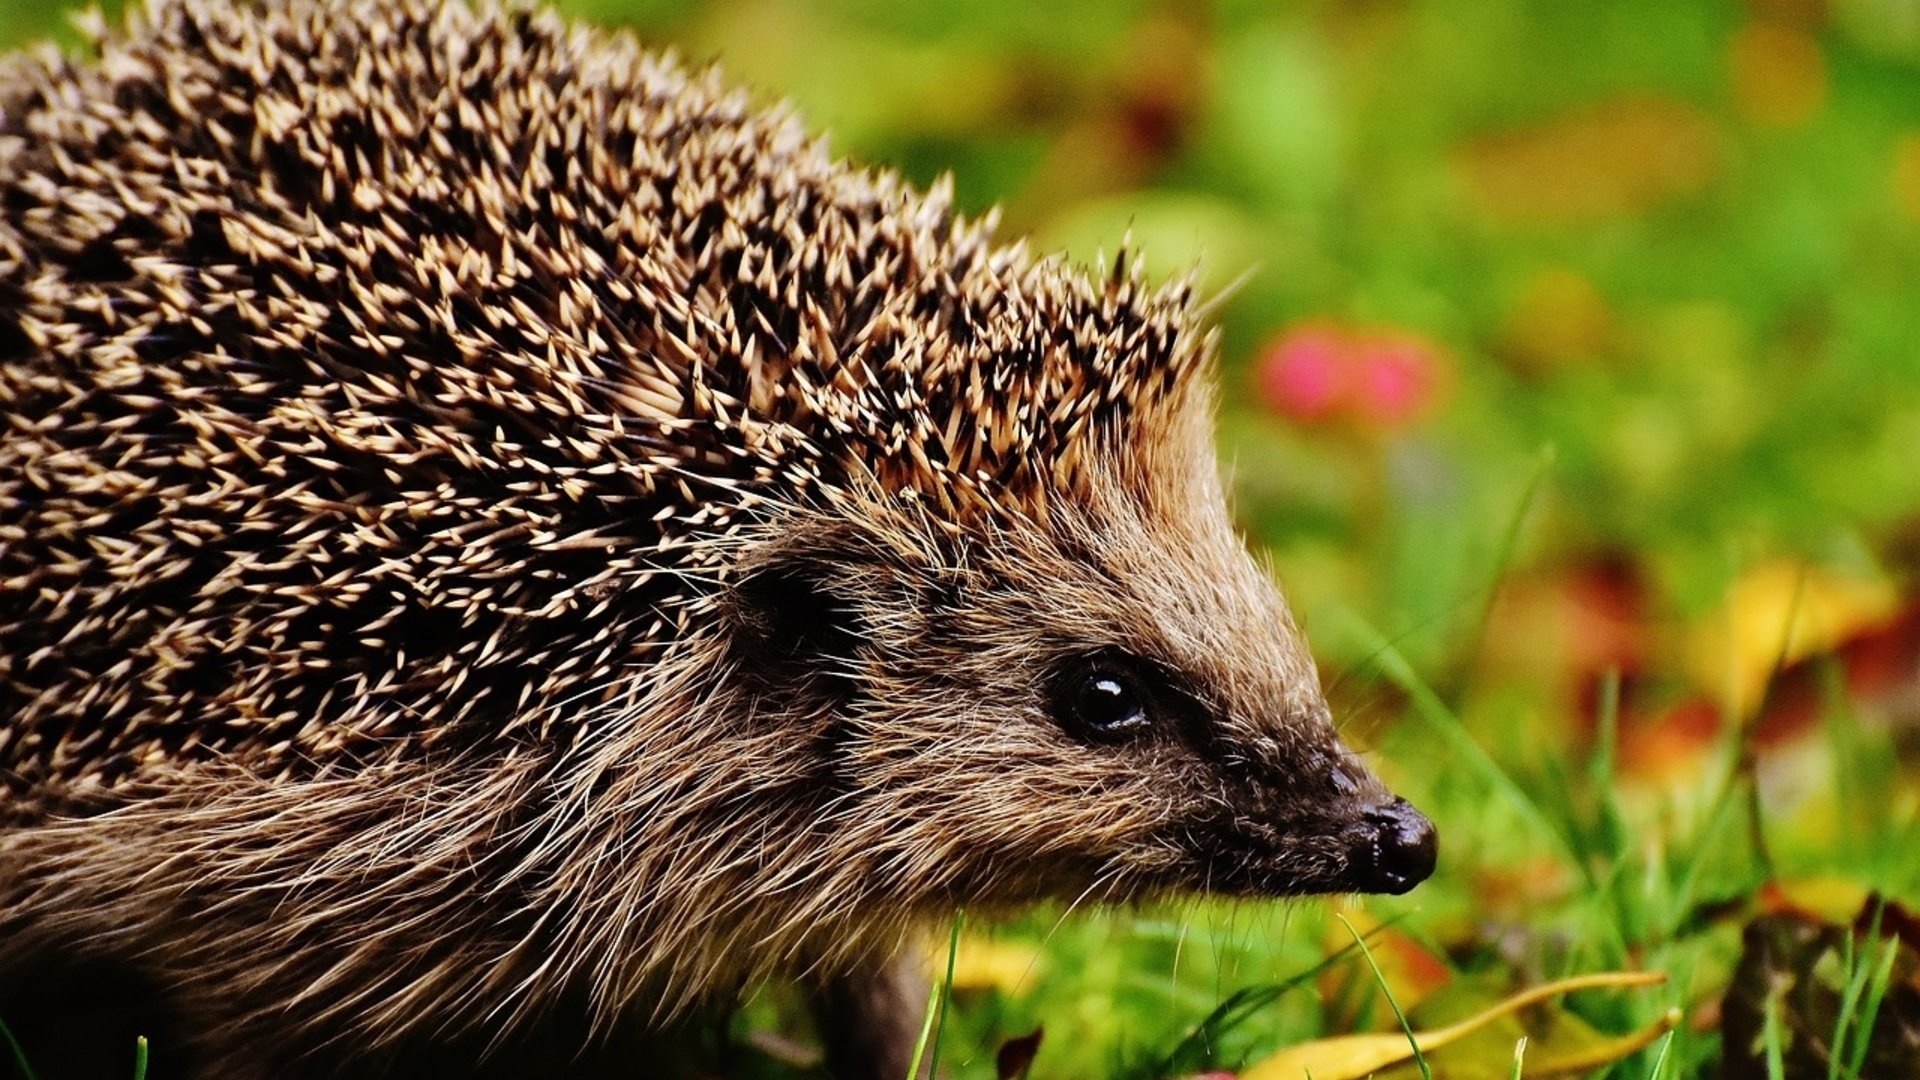 Hedgehog Picture